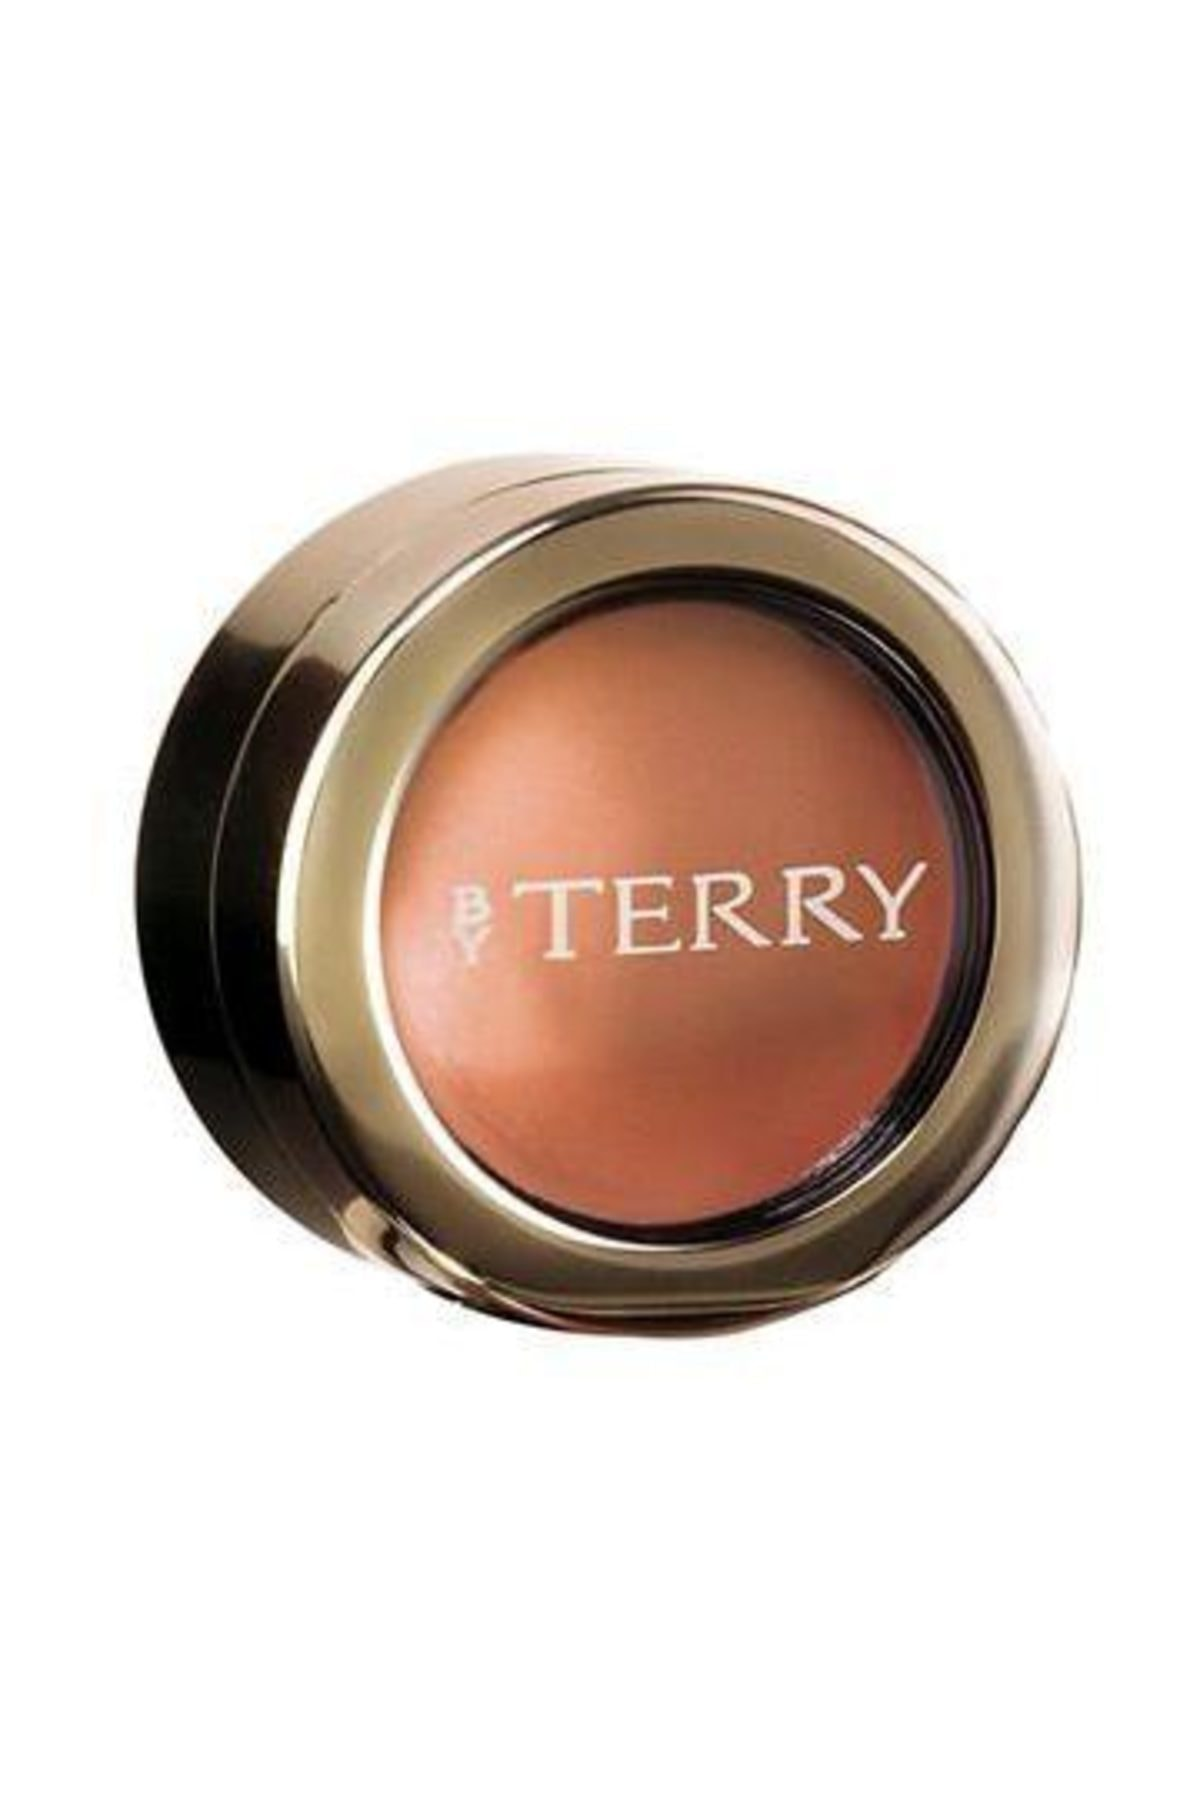 By Terry Blush Veloute Velvet Cream Blush - # 03 Ginger Glaze 3g/0.1oz